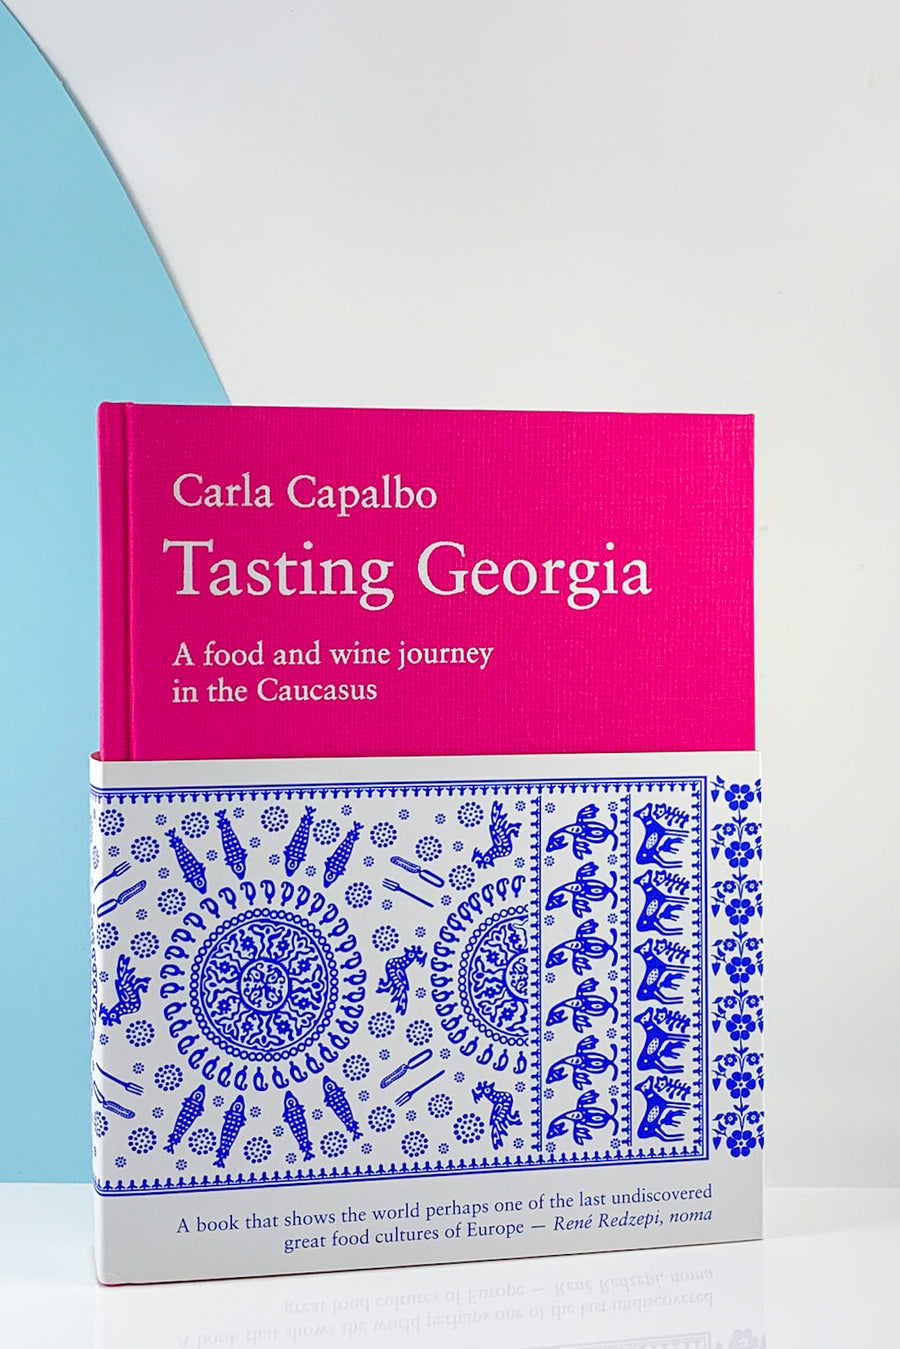 Tasting Georgia: A food and wine journey in the Caucasus - Carla Capalbo